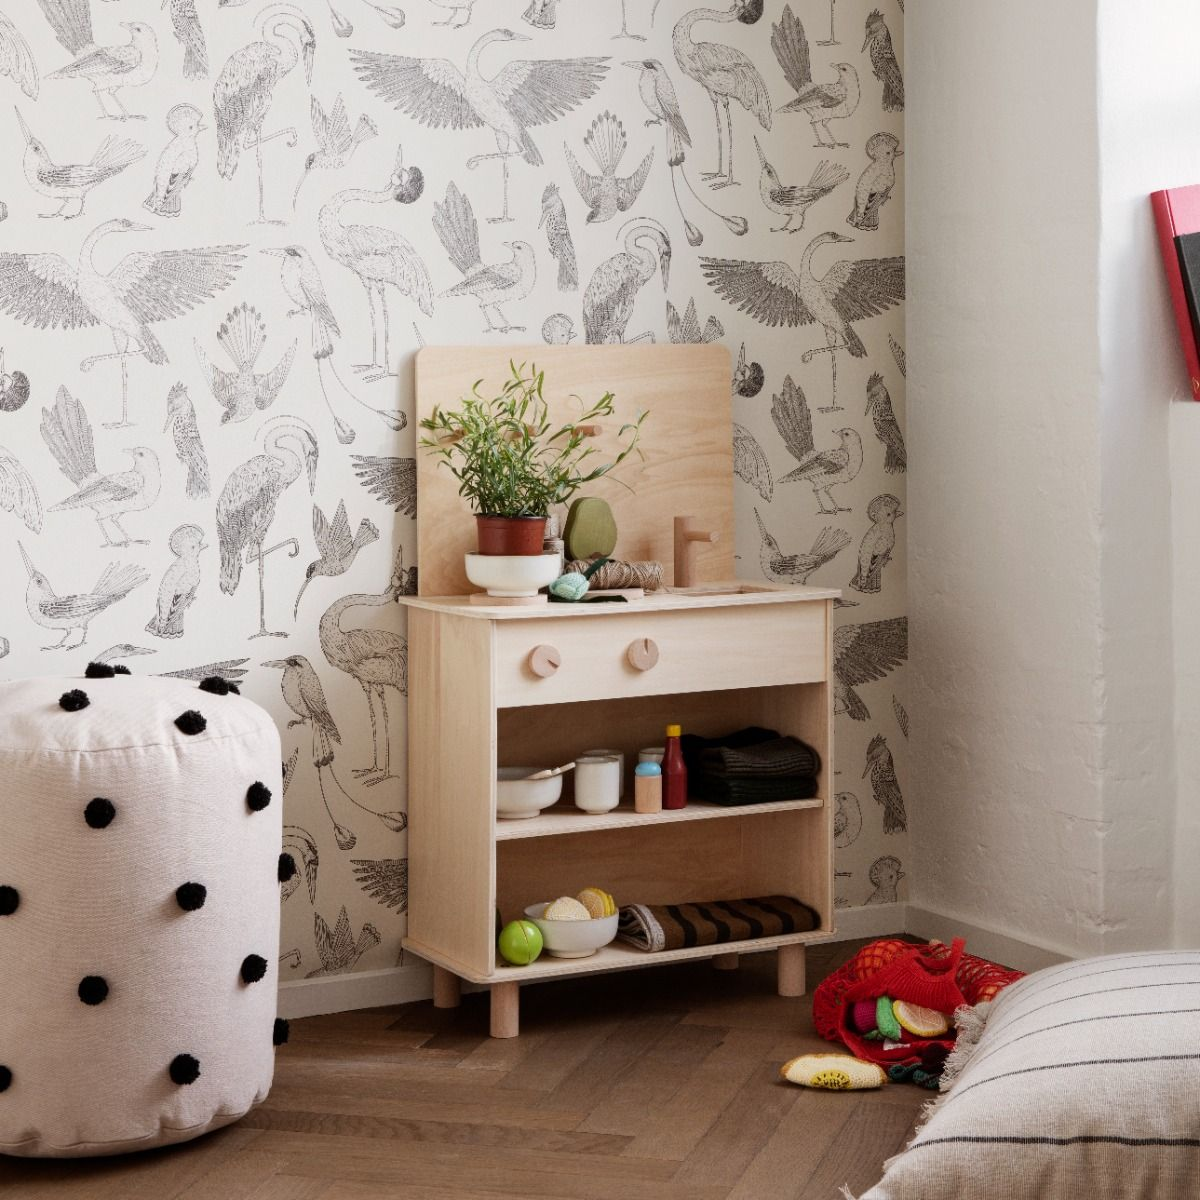 Ferm Living Toro Play Kitchen in kids room with birds wallpaper